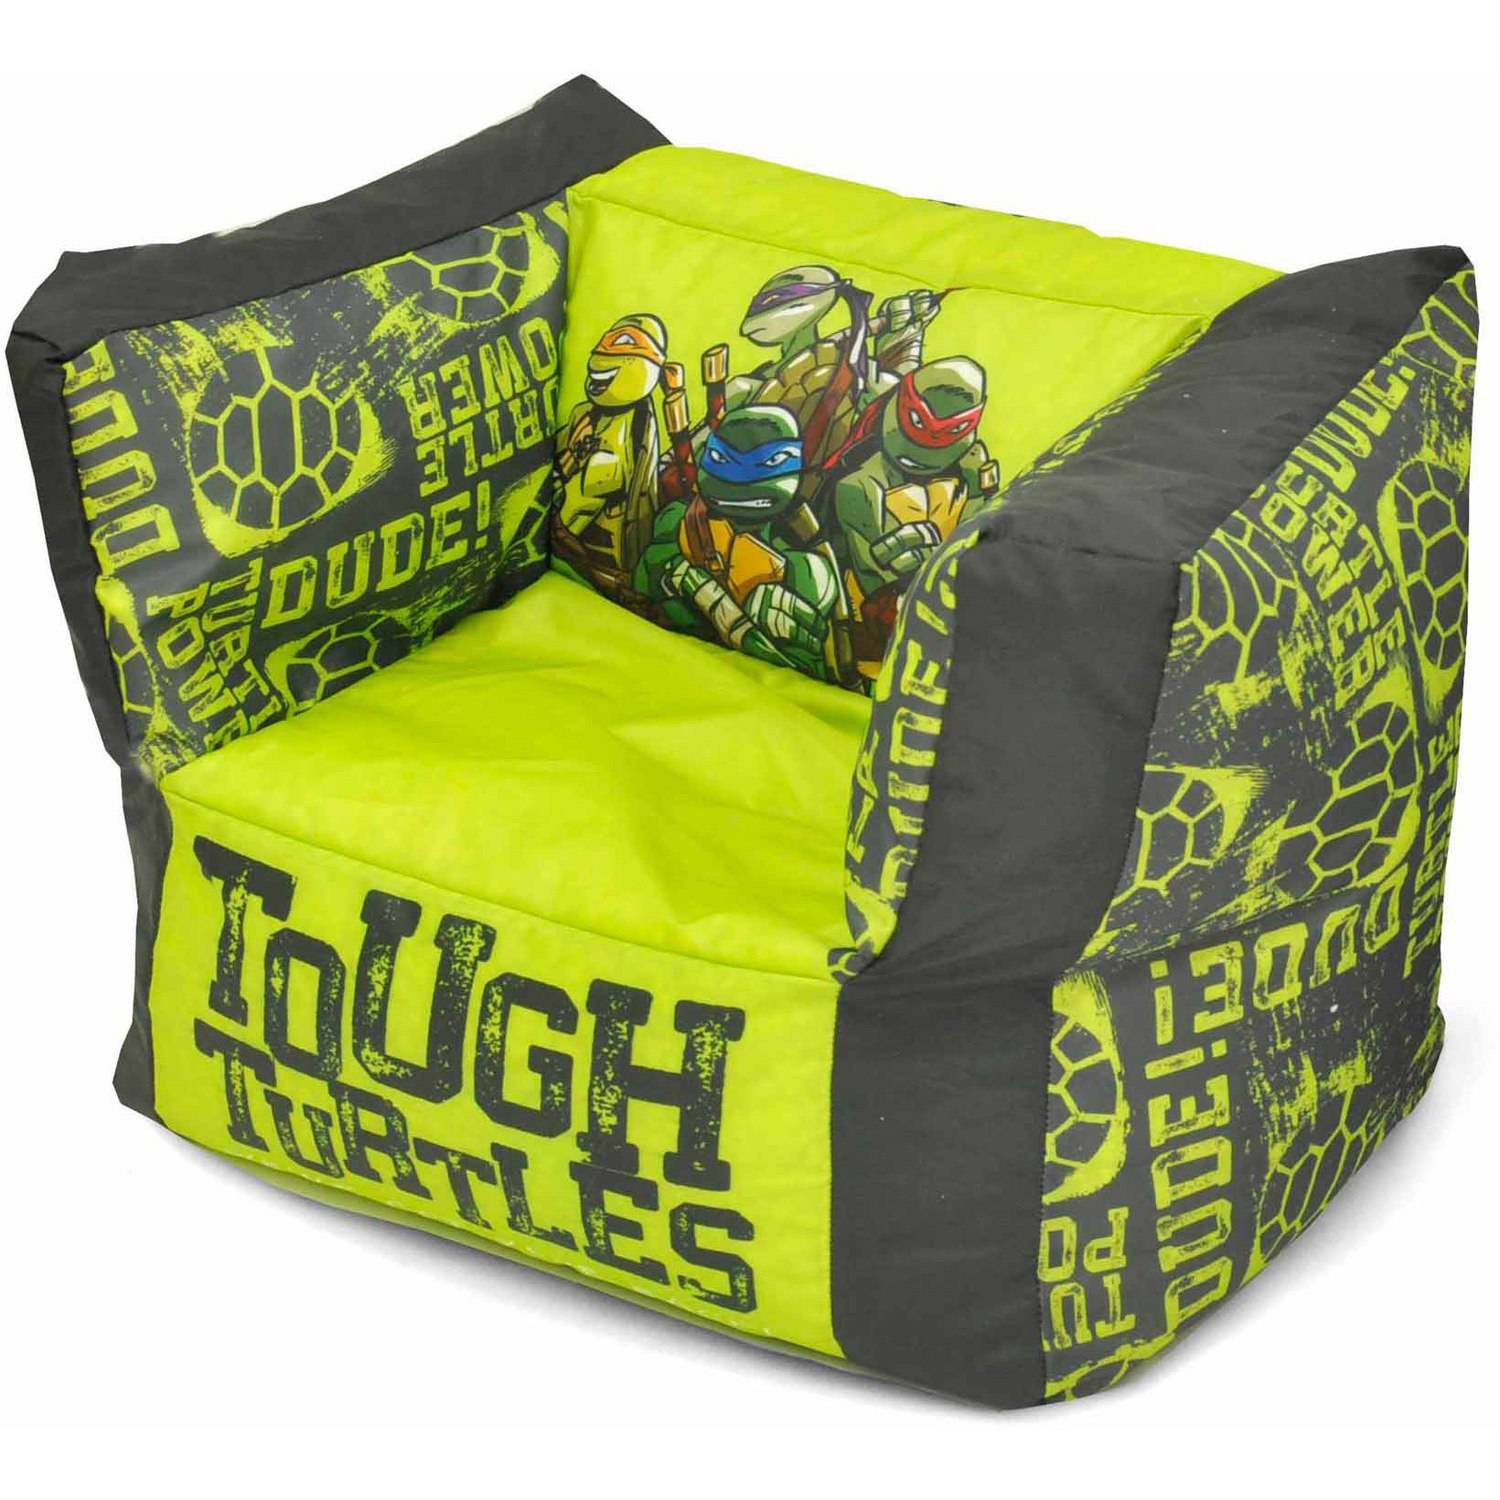 Ninja Turtles Square Bean Bag Chair